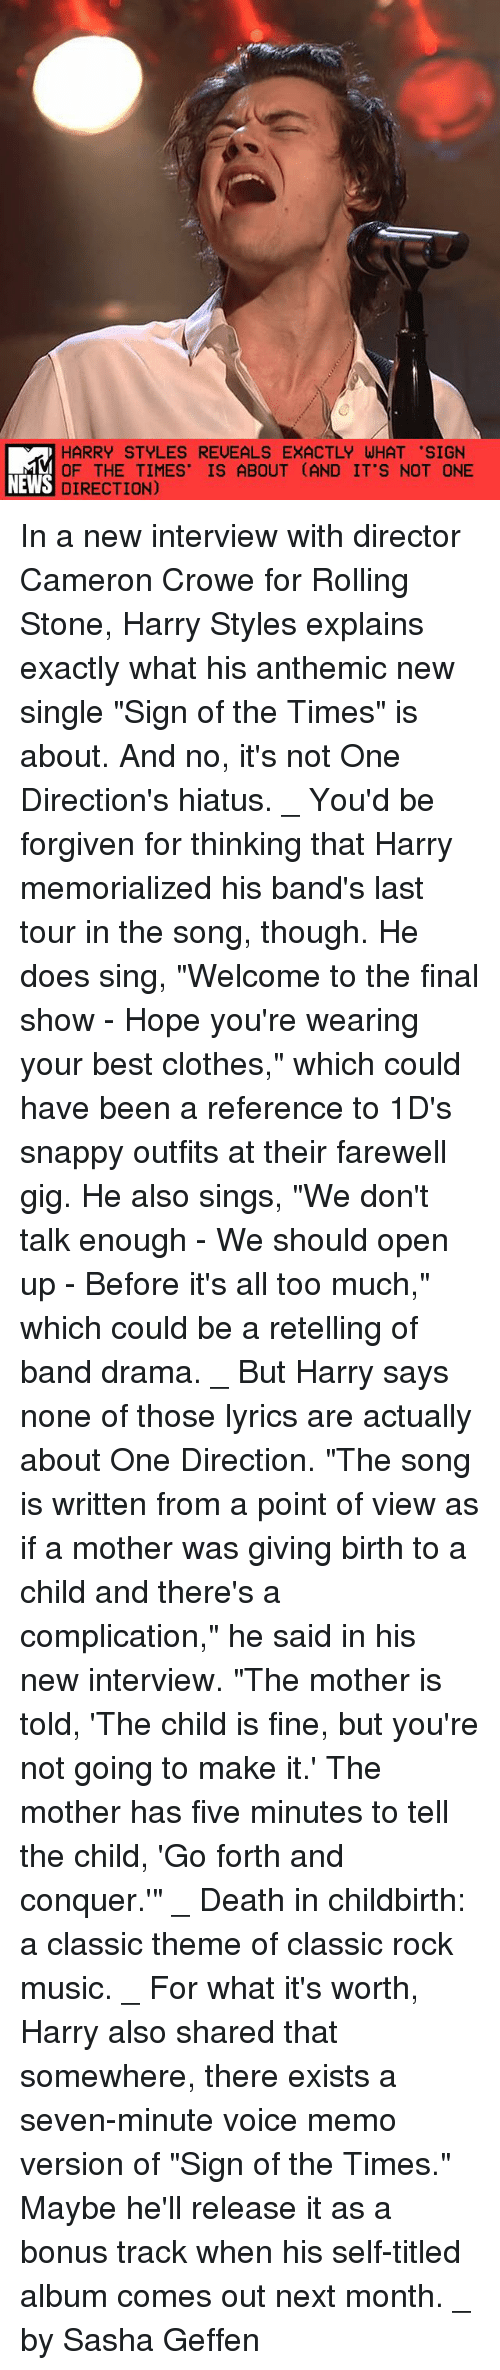 """Rolling Stone: HARRY STYLES REVEALS EXACTLY WHAT 'SIGN  OF THE TIMES' IS ABOUT (AND IT'S NOT ONE  NEWS DIRECTION) In a new interview with director Cameron Crowe for Rolling Stone, Harry Styles explains exactly what his anthemic new single """"Sign of the Times"""" is about. And no, it's not One Direction's hiatus. _ You'd be forgiven for thinking that Harry memorialized his band's last tour in the song, though. He does sing, """"Welcome to the final show - Hope you're wearing your best clothes,"""" which could have been a reference to 1D's snappy outfits at their farewell gig. He also sings, """"We don't talk enough - We should open up - Before it's all too much,"""" which could be a retelling of band drama. _ But Harry says none of those lyrics are actually about One Direction. """"The song is written from a point of view as if a mother was giving birth to a child and there's a complication,"""" he said in his new interview. """"The mother is told, 'The child is fine, but you're not going to make it.' The mother has five minutes to tell the child, 'Go forth and conquer.'"""" _ Death in childbirth: a classic theme of classic rock music. _ For what it's worth, Harry also shared that somewhere, there exists a seven-minute voice memo version of """"Sign of the Times."""" Maybe he'll release it as a bonus track when his self-titled album comes out next month. _ by Sasha Geffen"""